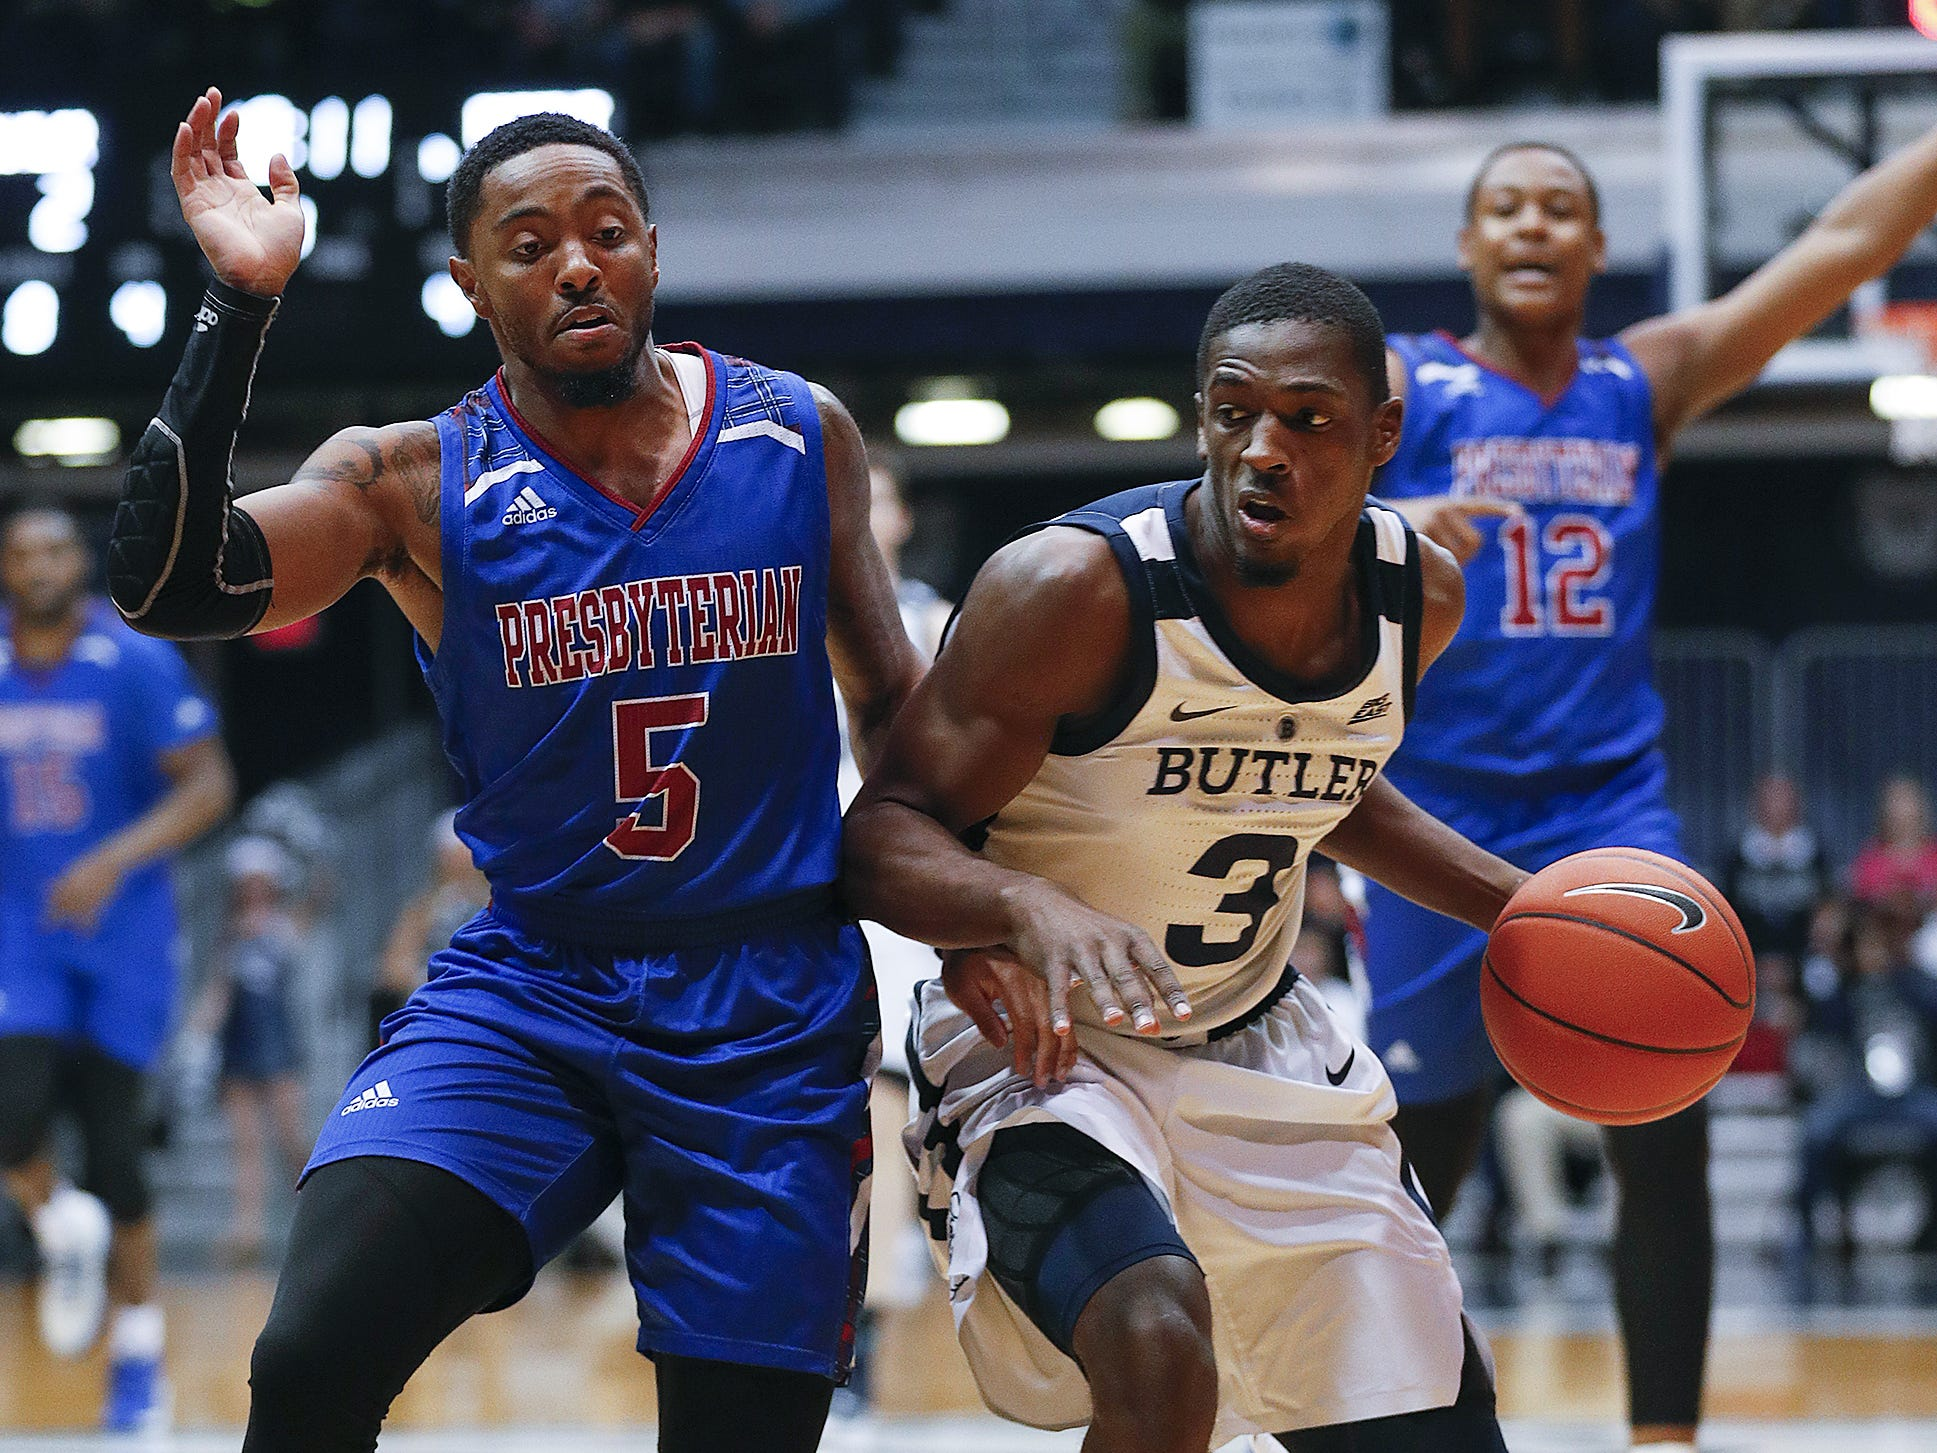 Butler Bulldogs guard Kamar Baldwin (3) drives on Presbyterian Blue Hose guard Davon Bell (5) in the first half of their game at Hinkle Fieldhouse on Monday, Dec. 18, 2018.